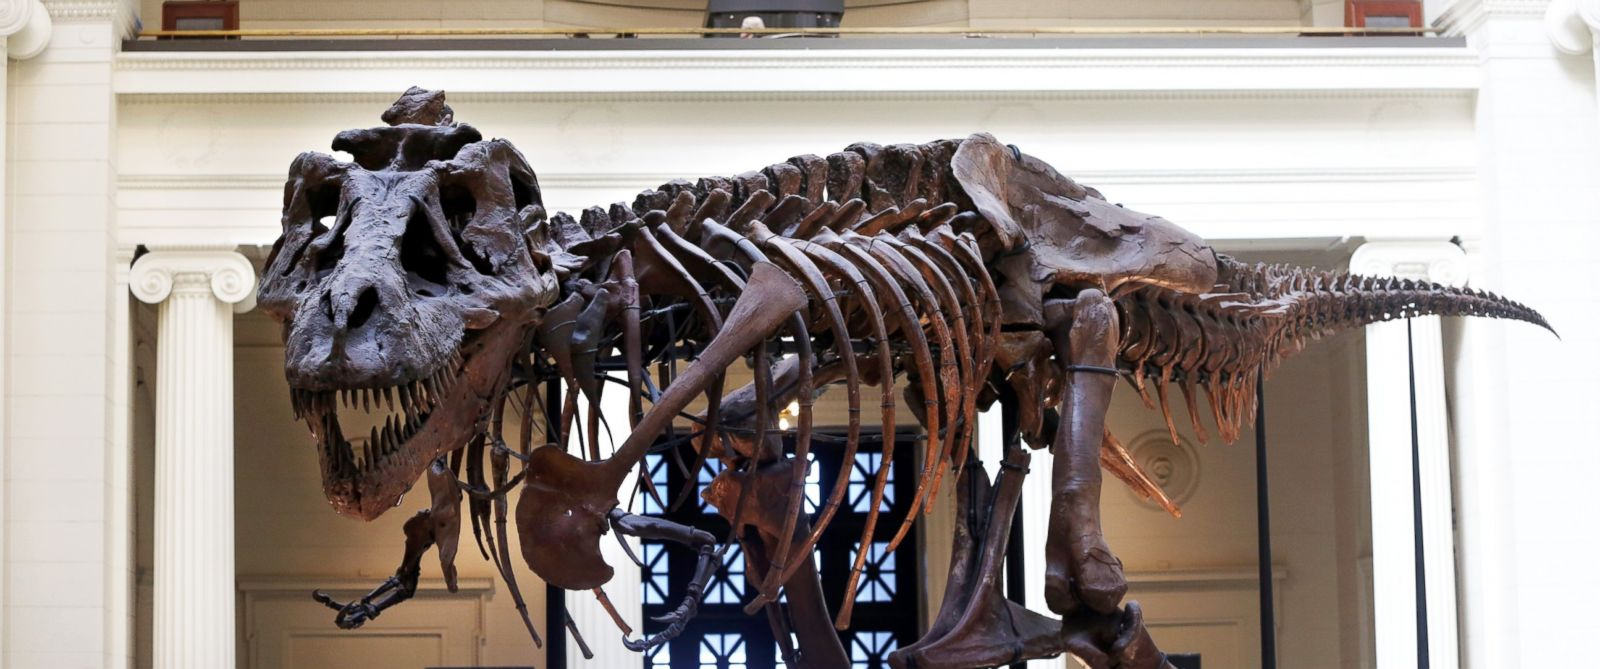 PHOTO: Sue, one of the largest, most extensive and best-preserved Tyrannosaurus rex specimens ever found, is displayed as part of the permanent collection at the Field Museum of Natural History in Chicago, Ill., in this April 1, 2014, file photo.